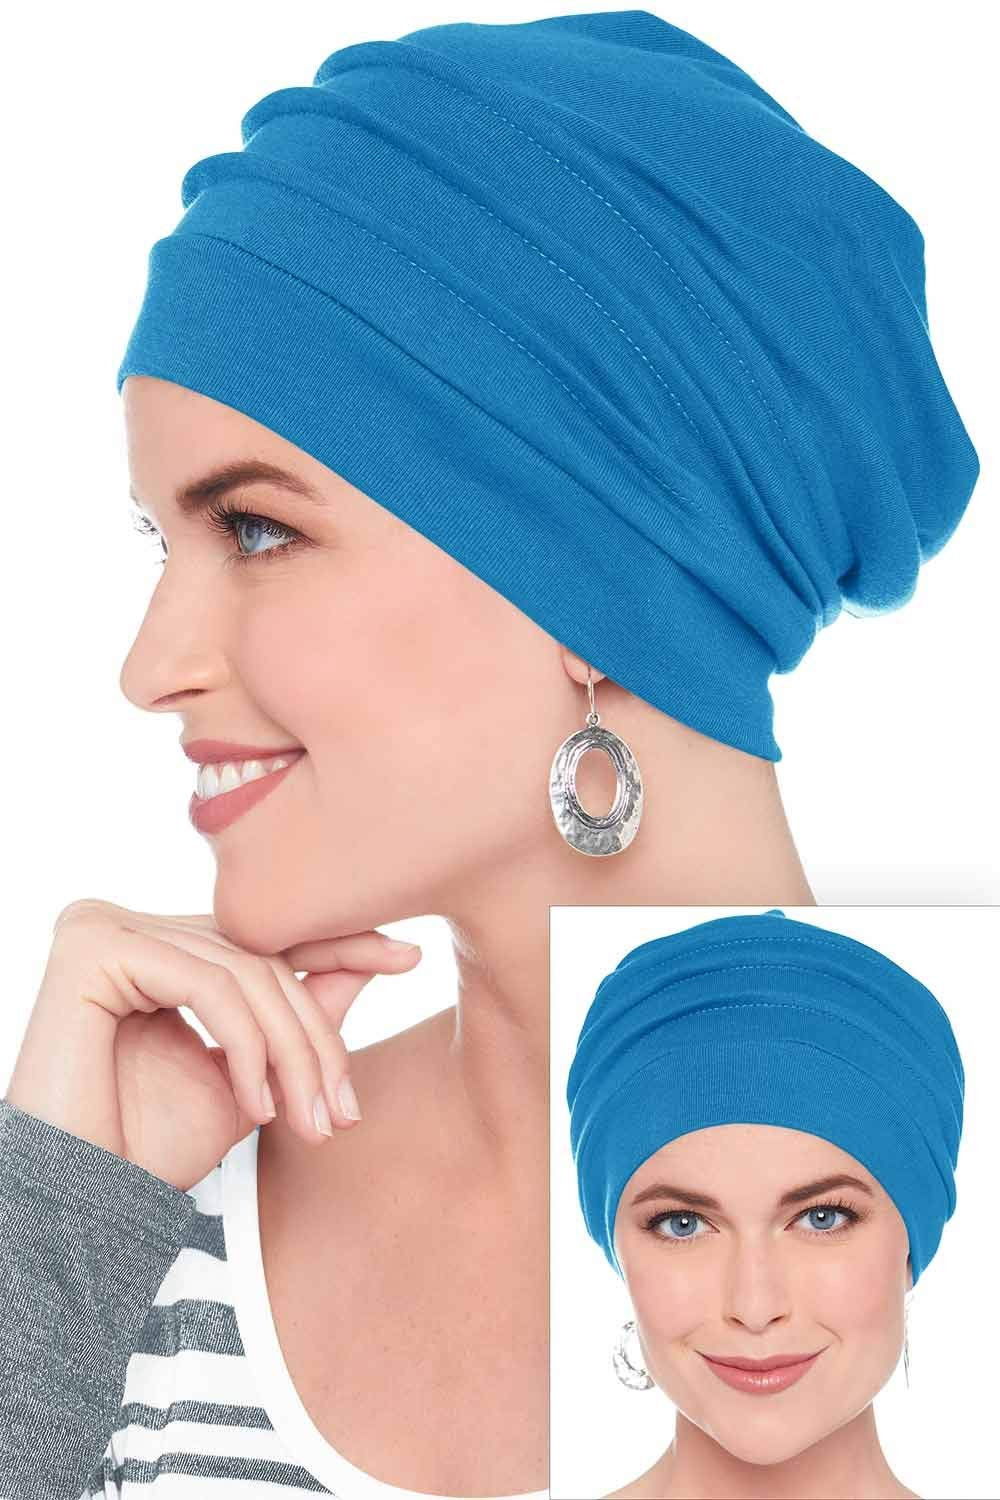 Headcovers Unlimited 100% Cotton Slouchy Snood Caps for Women with Chemo Cancer Hair Loss Azure